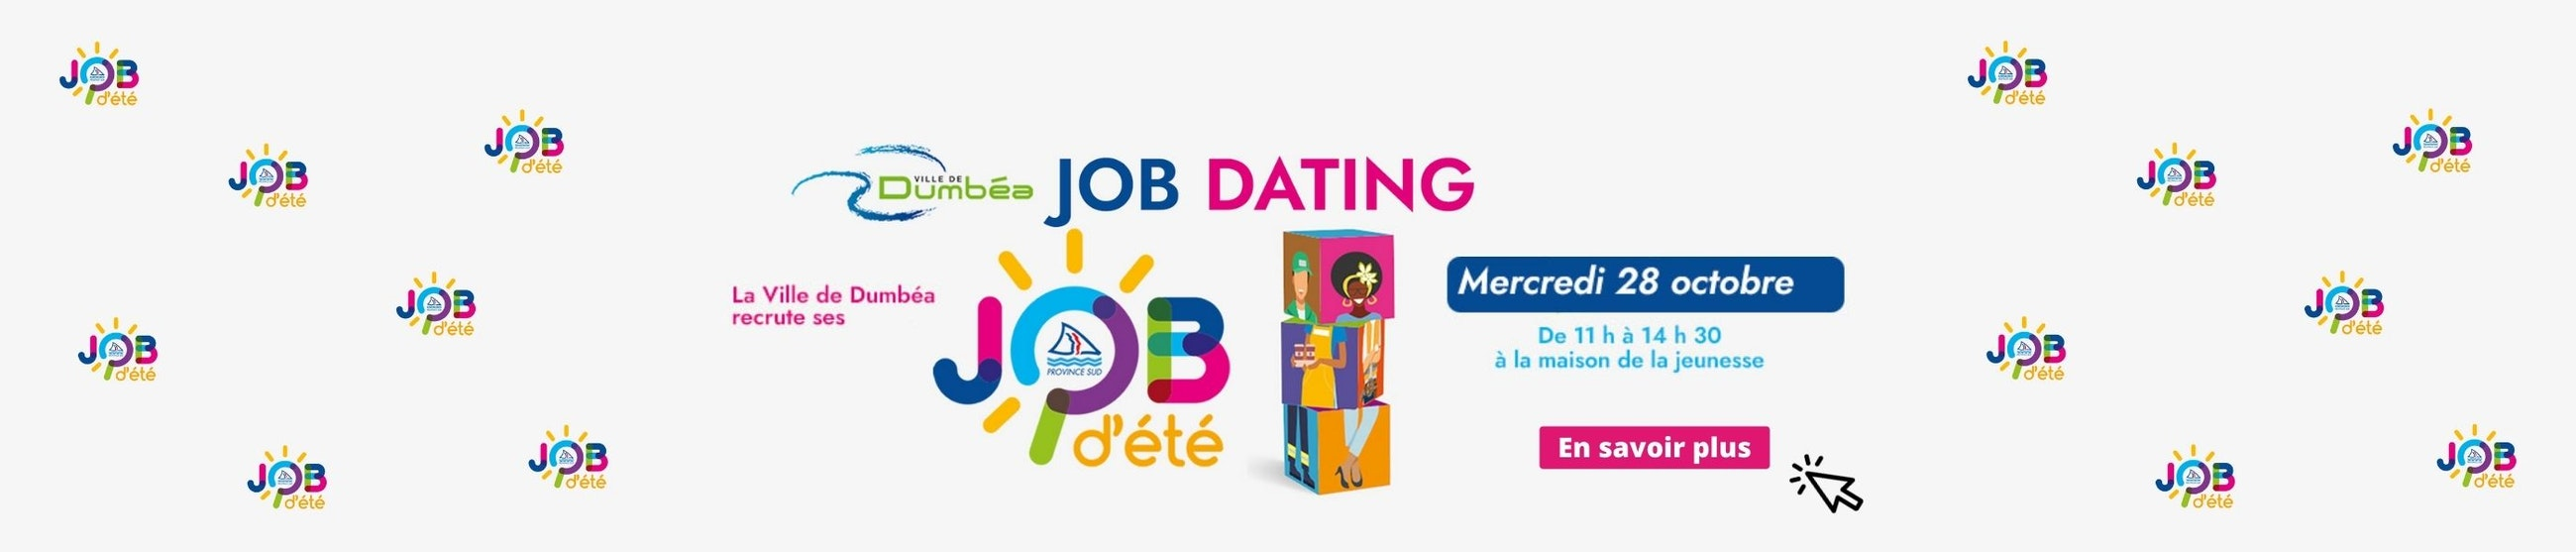 1603273257 job dating 1